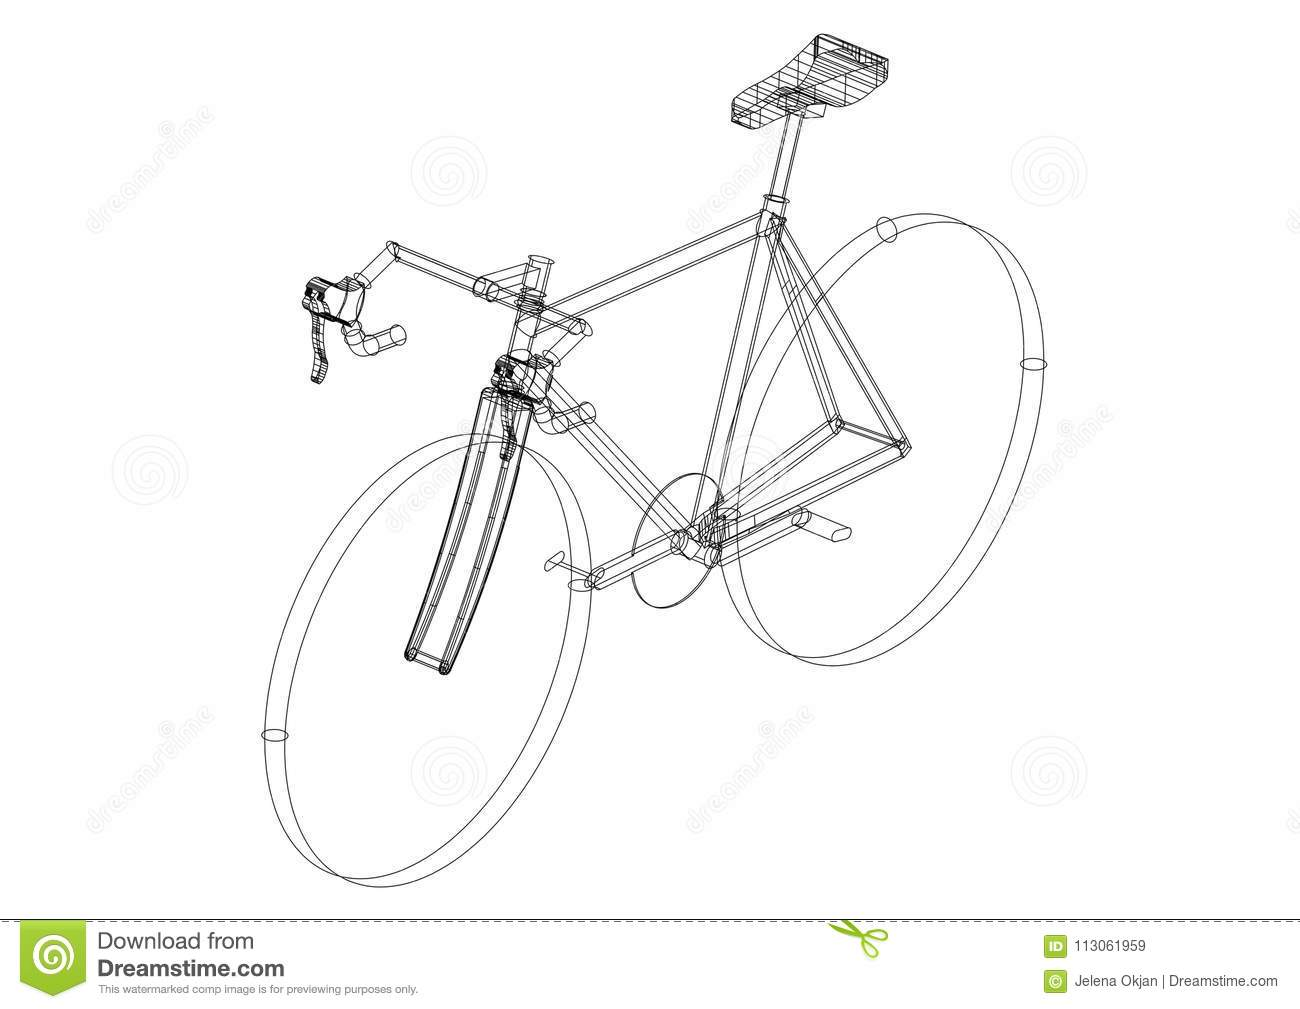 Bicycle 3d blueprint isolated stock illustration illustration of bicycle 3d blueprint isolated malvernweather Image collections